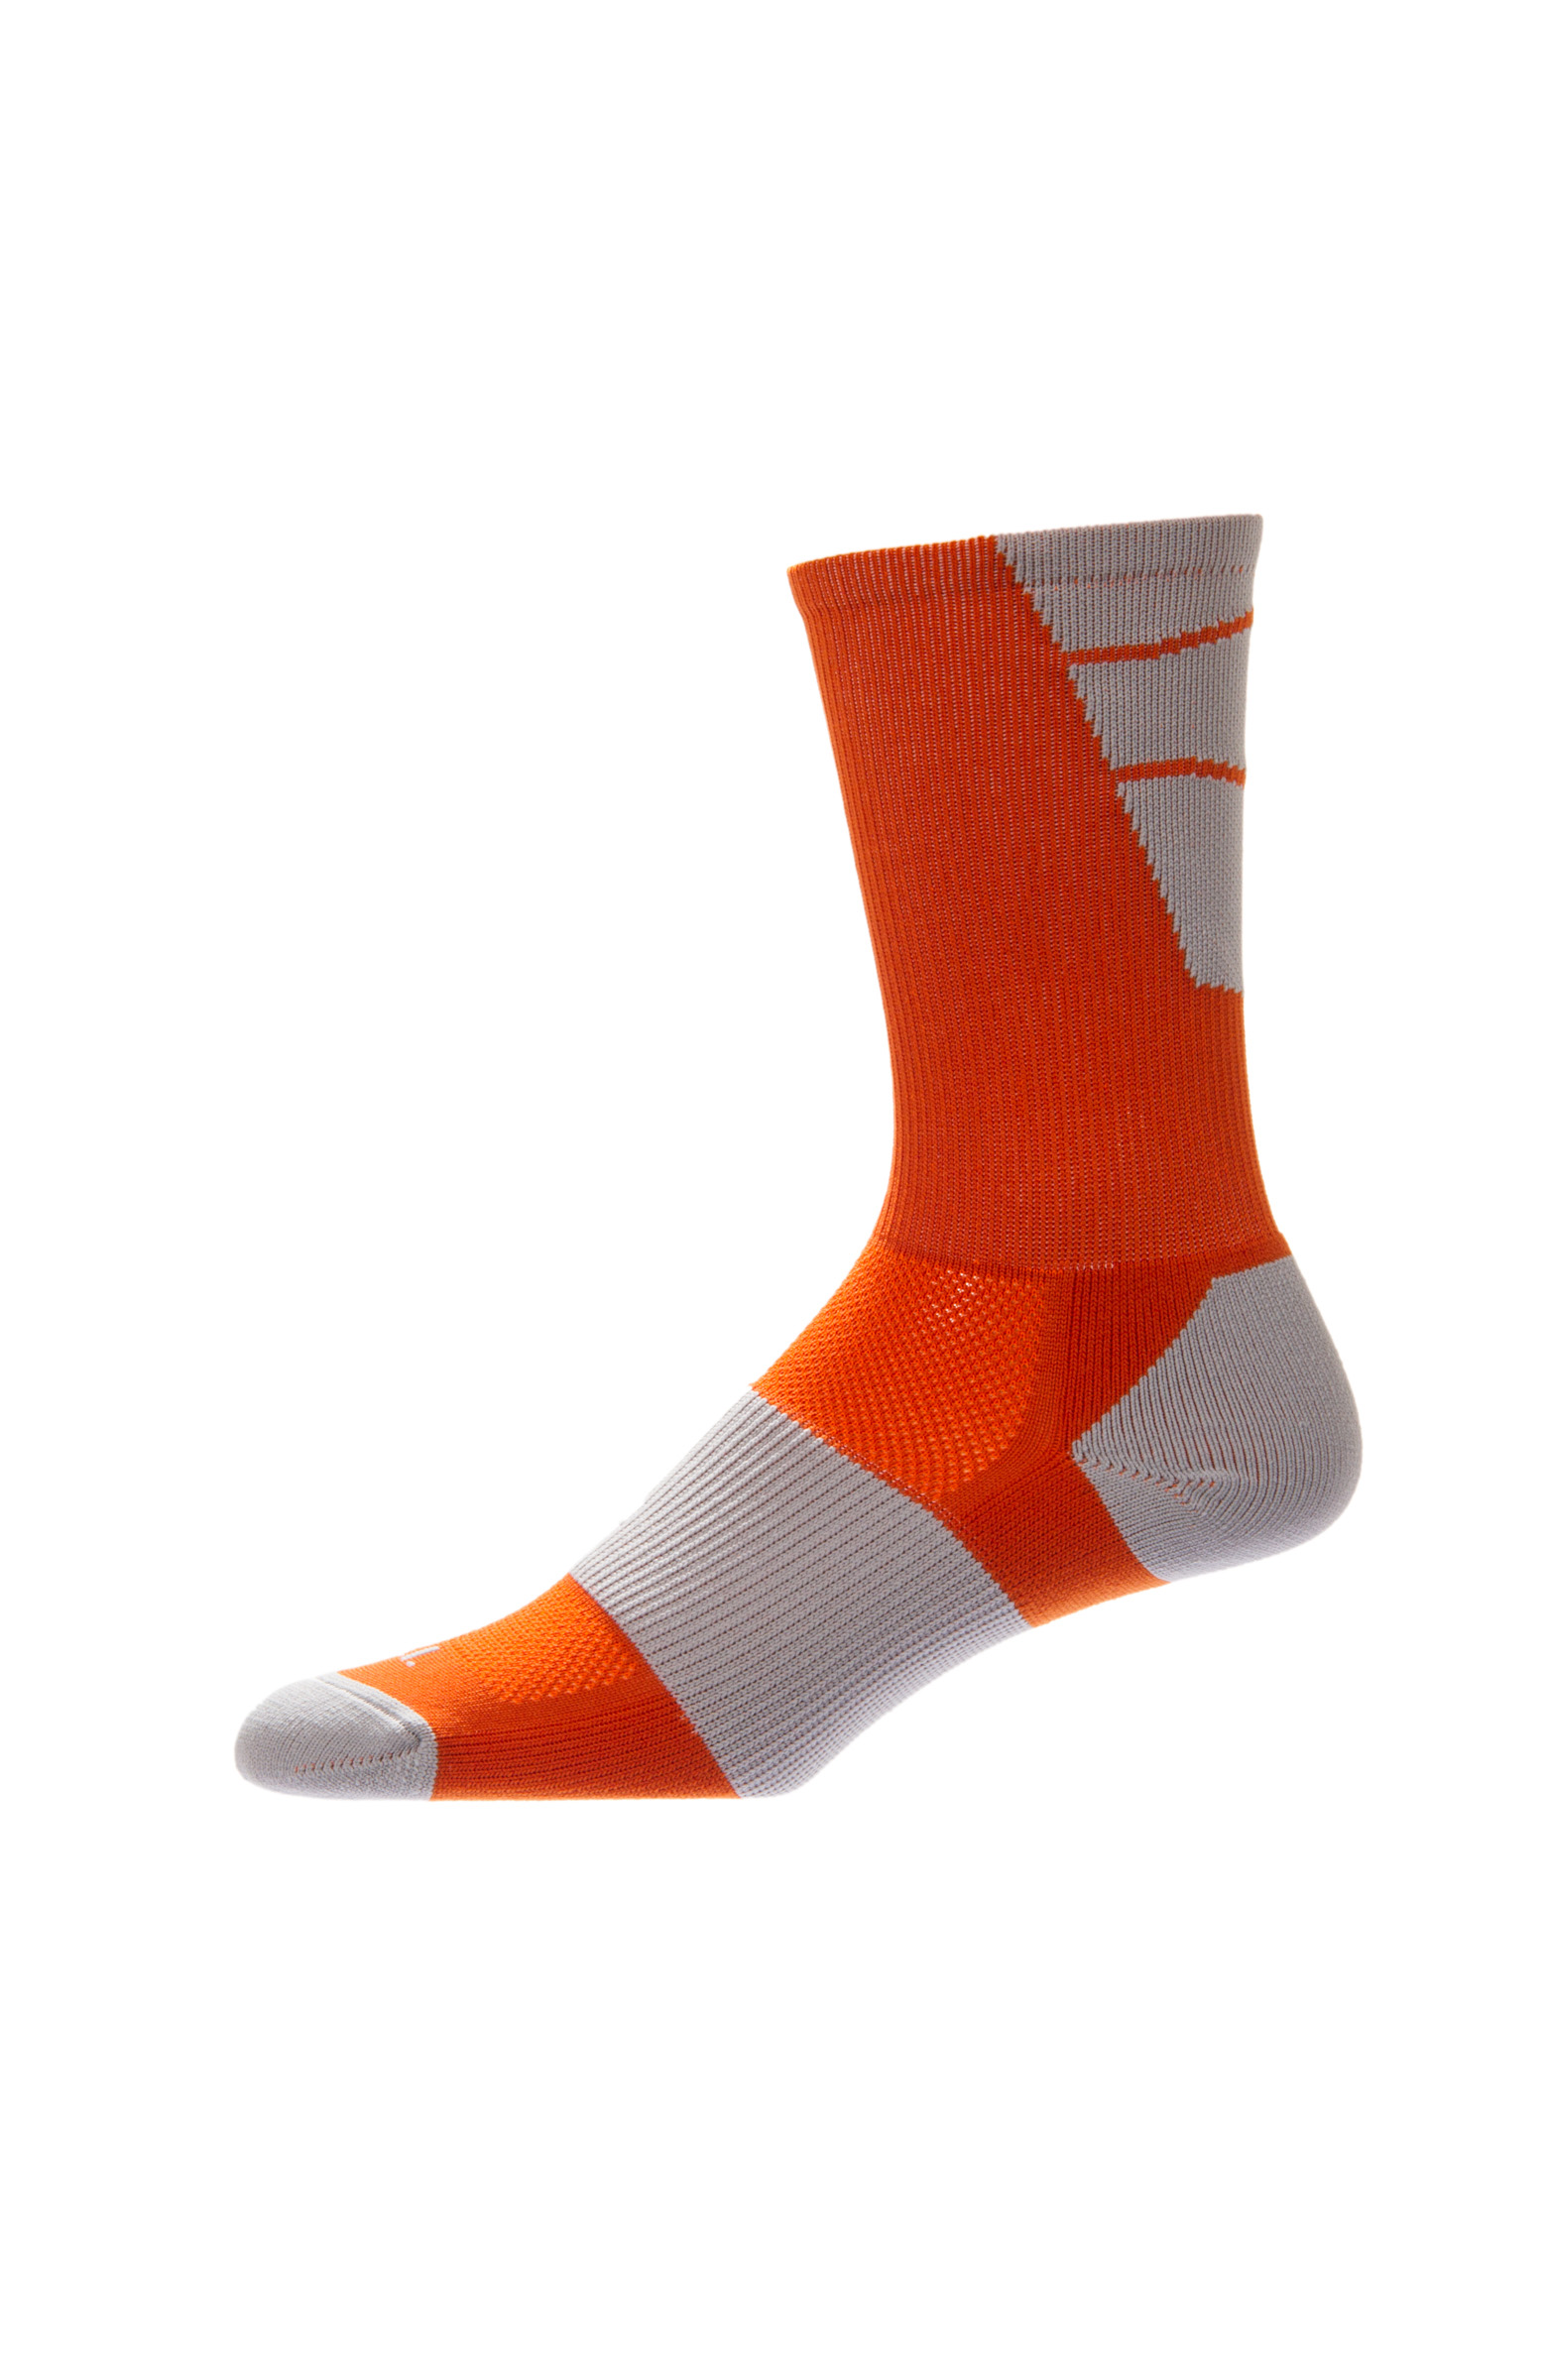 These CSI Performance Crew Sock comes in such fun colorways, like the one seen here.